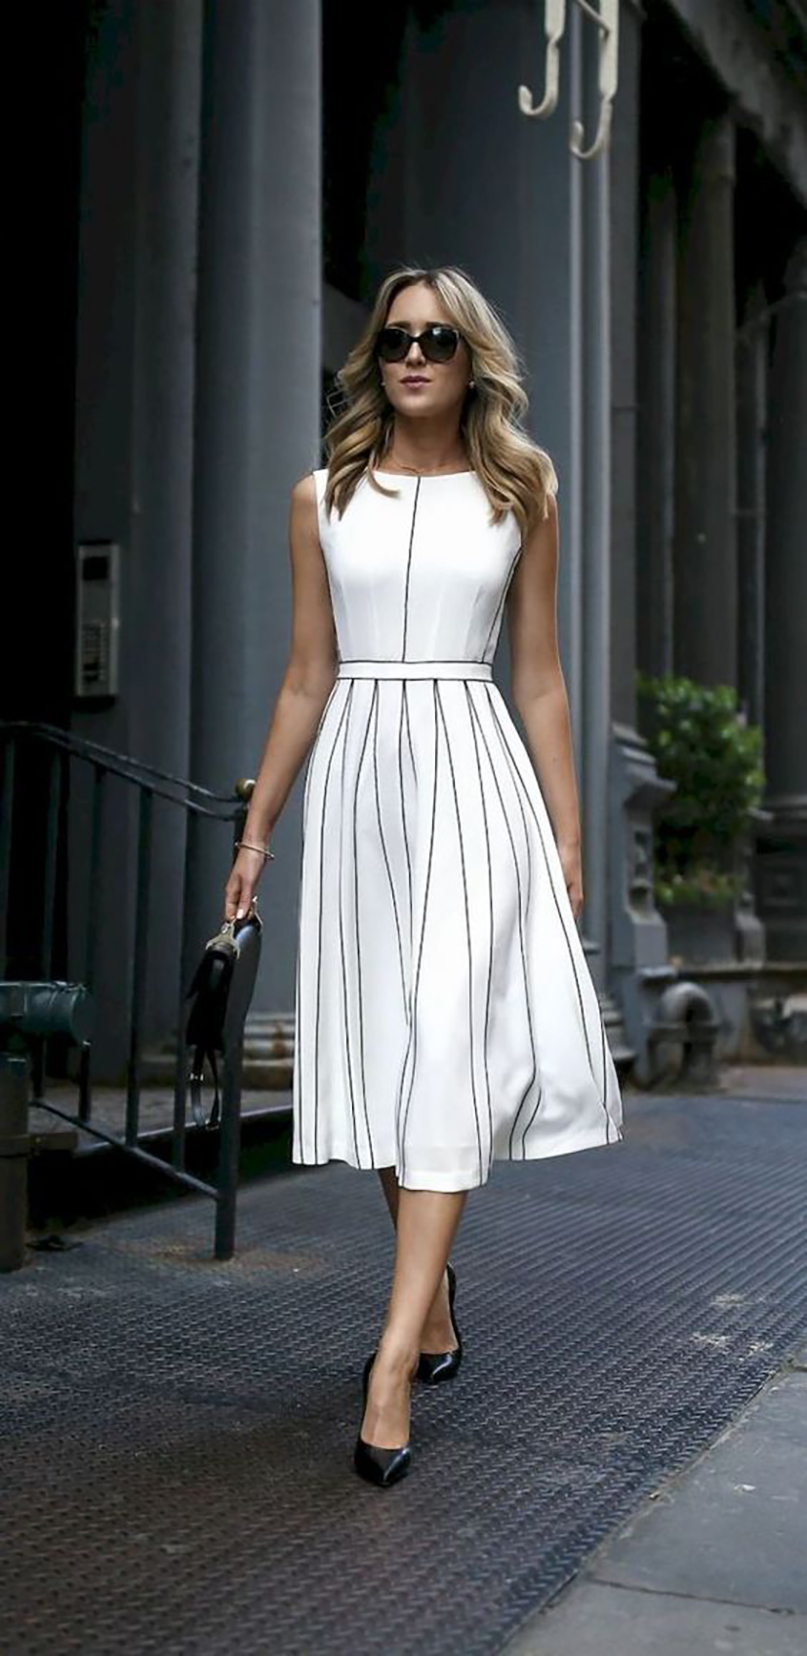 15 summer looks for the office Look 3